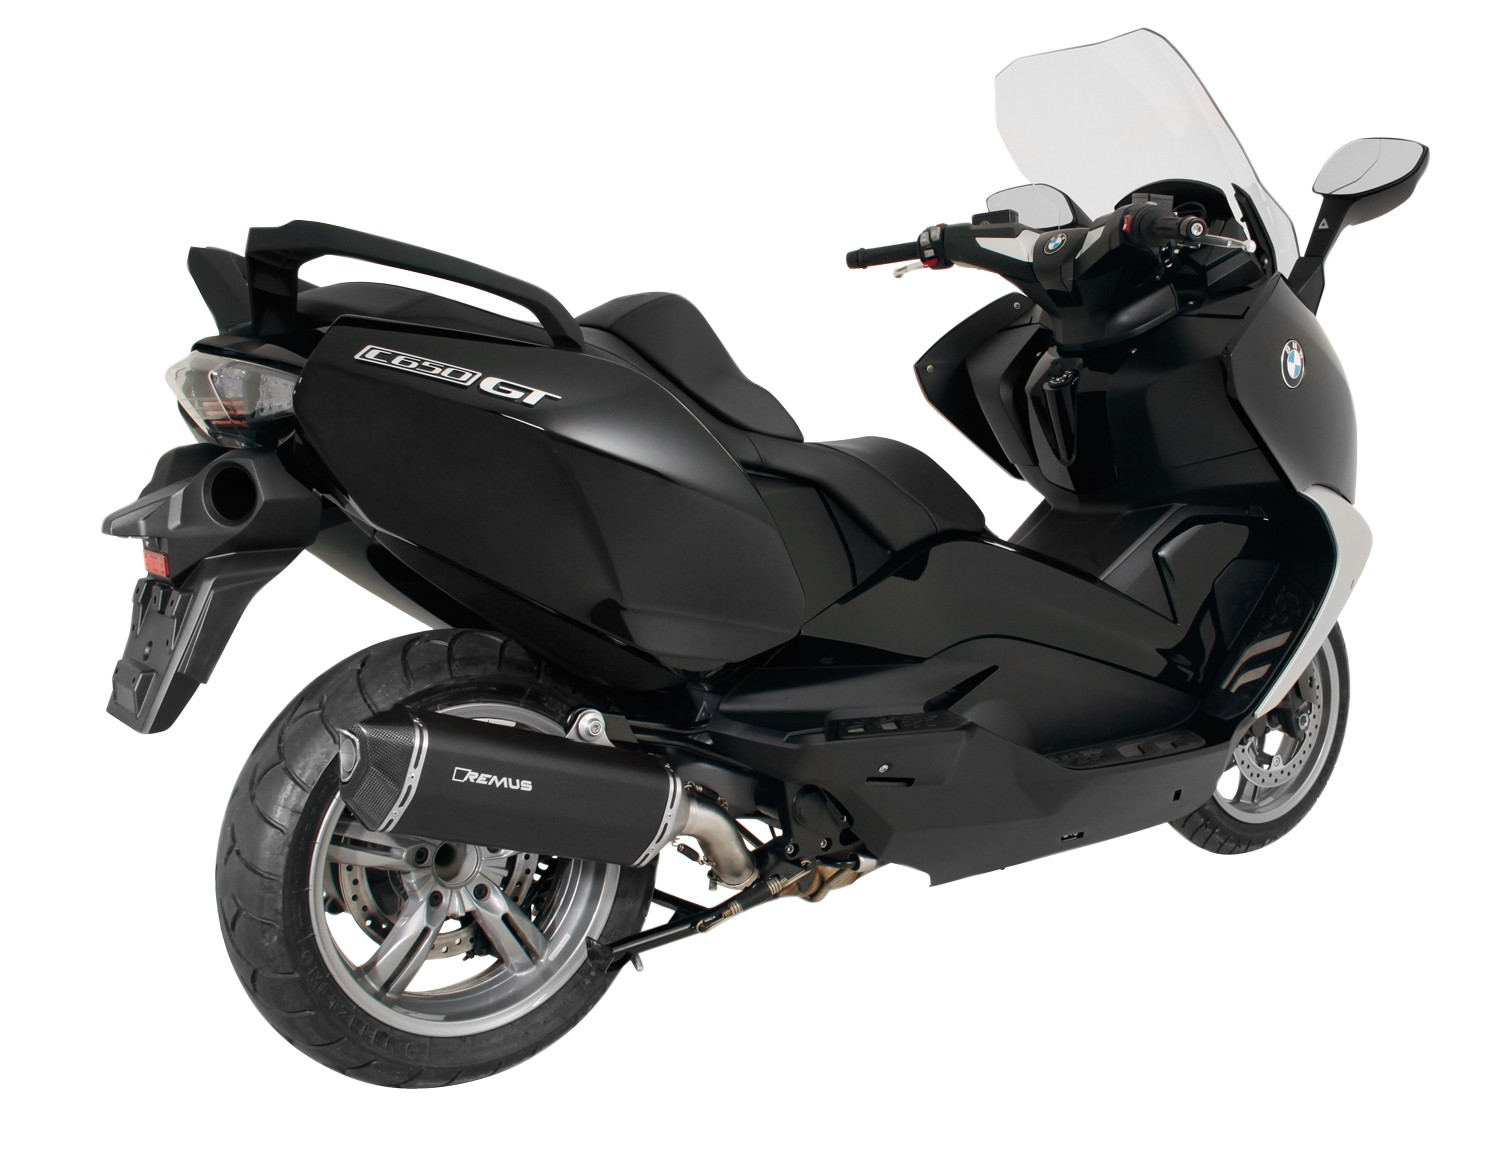 remus news bike info 01 16 bmw c650 sport and c650 gt. Black Bedroom Furniture Sets. Home Design Ideas